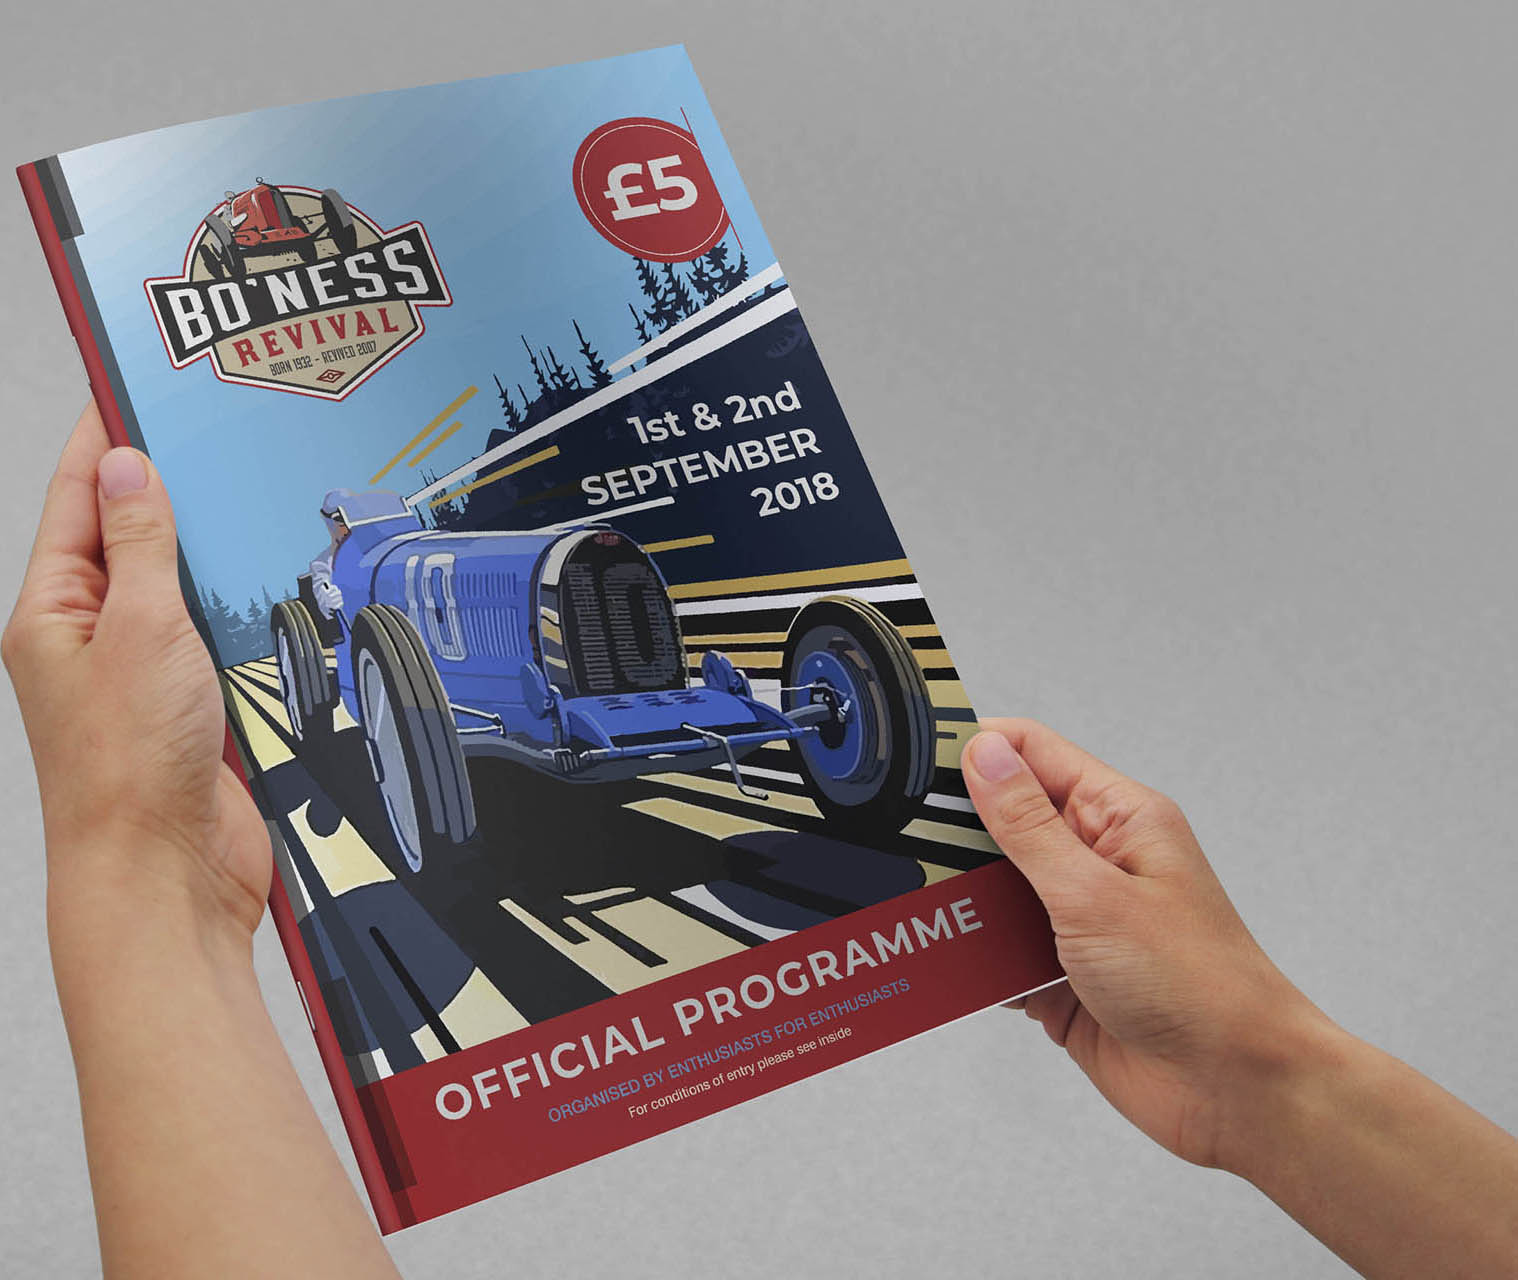 Bo'ness Revival got Fearless Creative to handle all their event marketing including leaflet design, graphic design, illustration and print. Fearless Creative Edinburgh were responsible for all event Magazine Publication and Printing